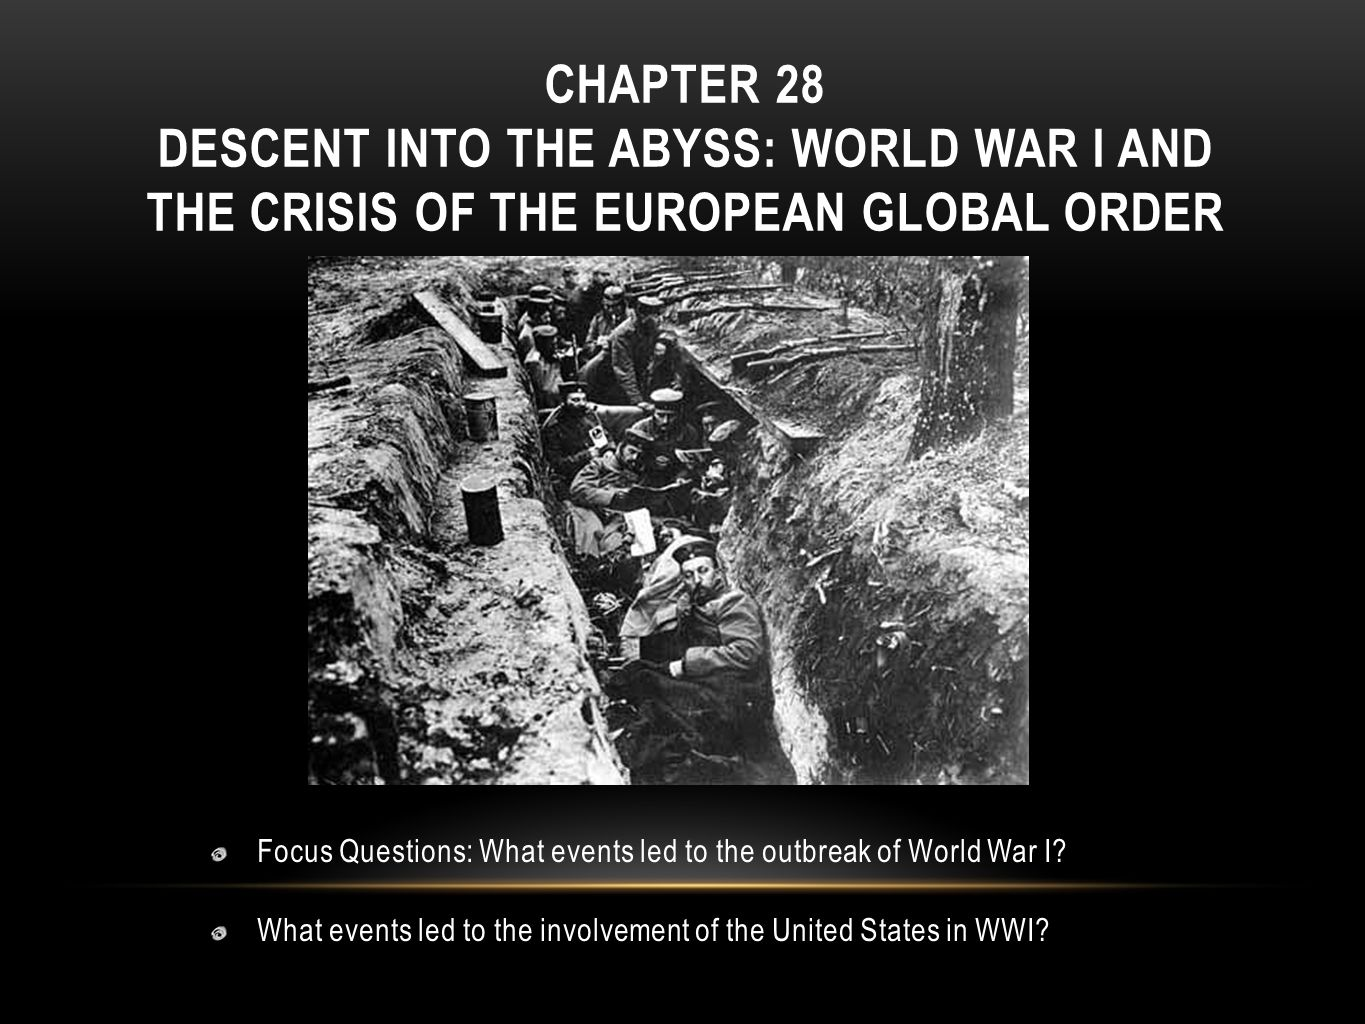 the events that led to the first world war World history/causes and course of the first world war from wikibooks, open books for an open world  factors leading to war  a remarkable series of events kept the relative peace but as 1914 approached, tensions began to rise in a number of countries, and key issues began to take their toll.